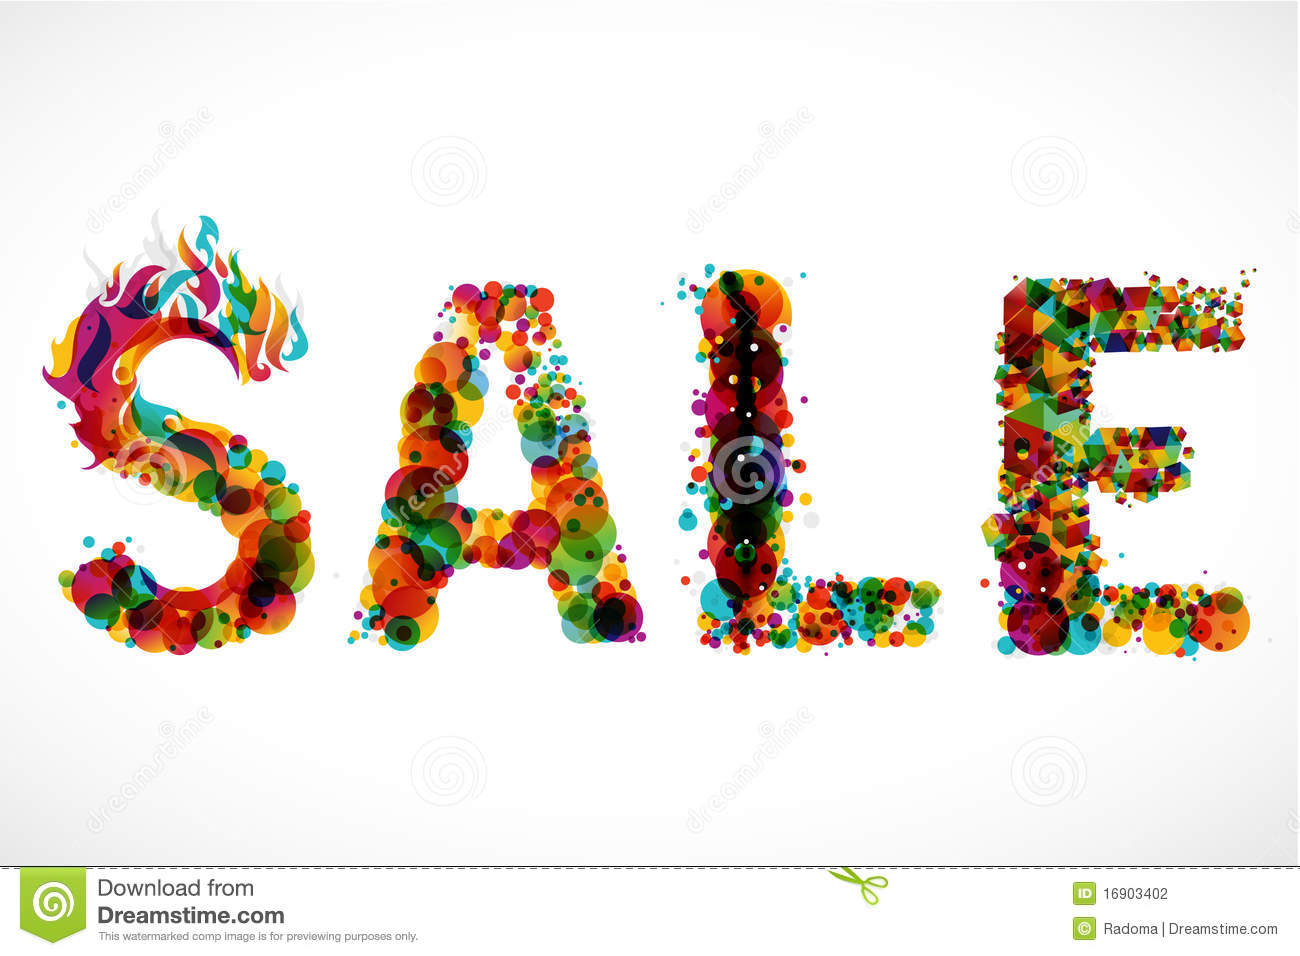 SALE  Funky Graphic Design Stock Photography  Image: 16903402